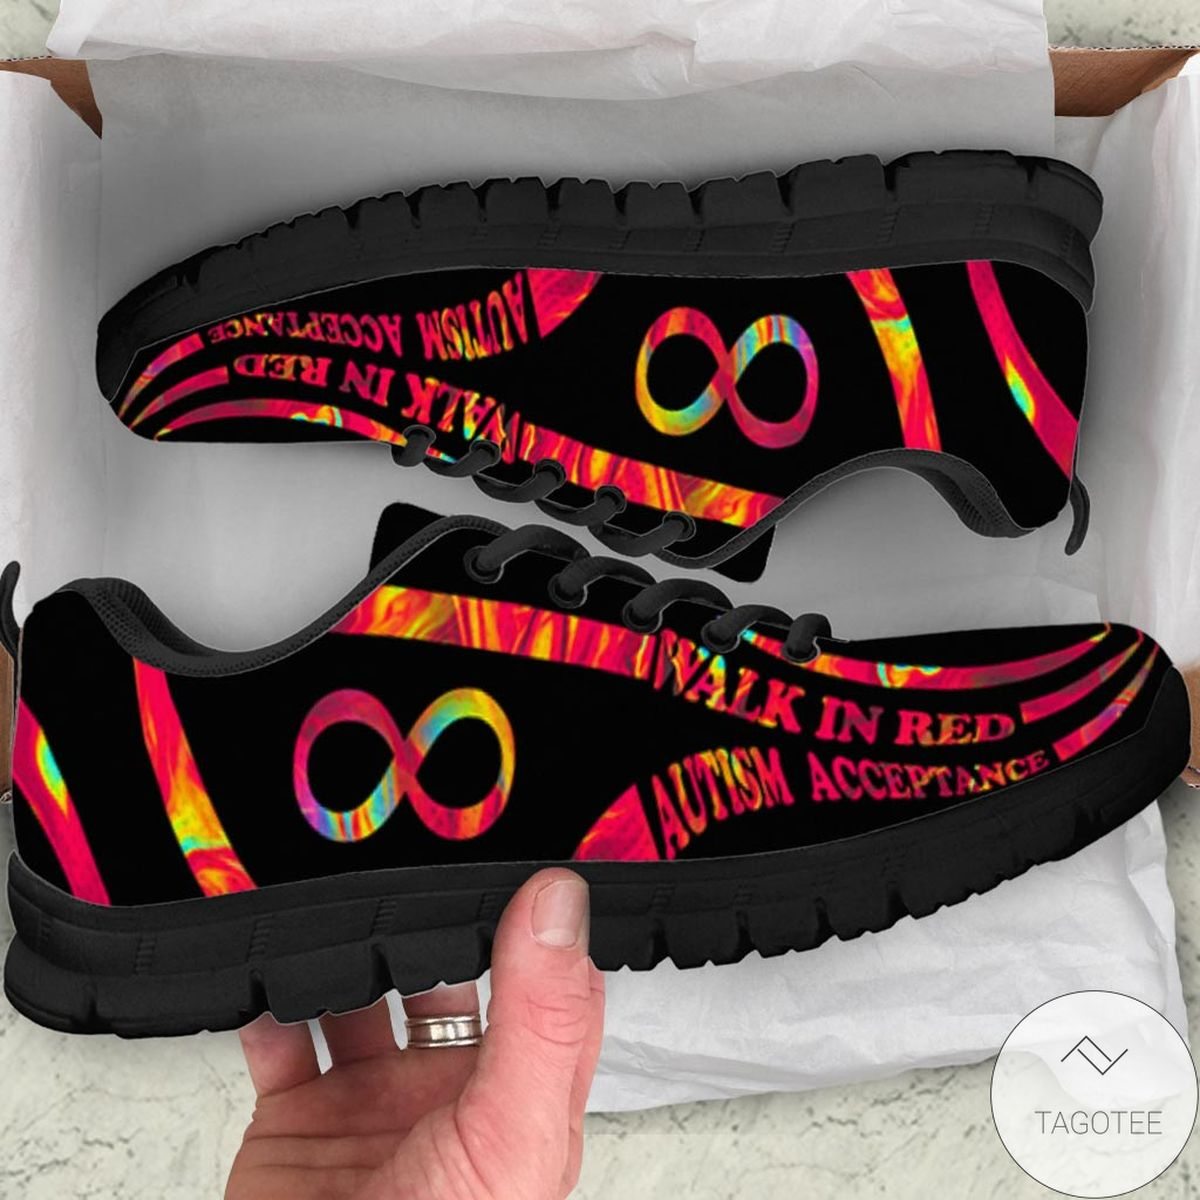 Walk In Red Autism Acceptance Sneakers